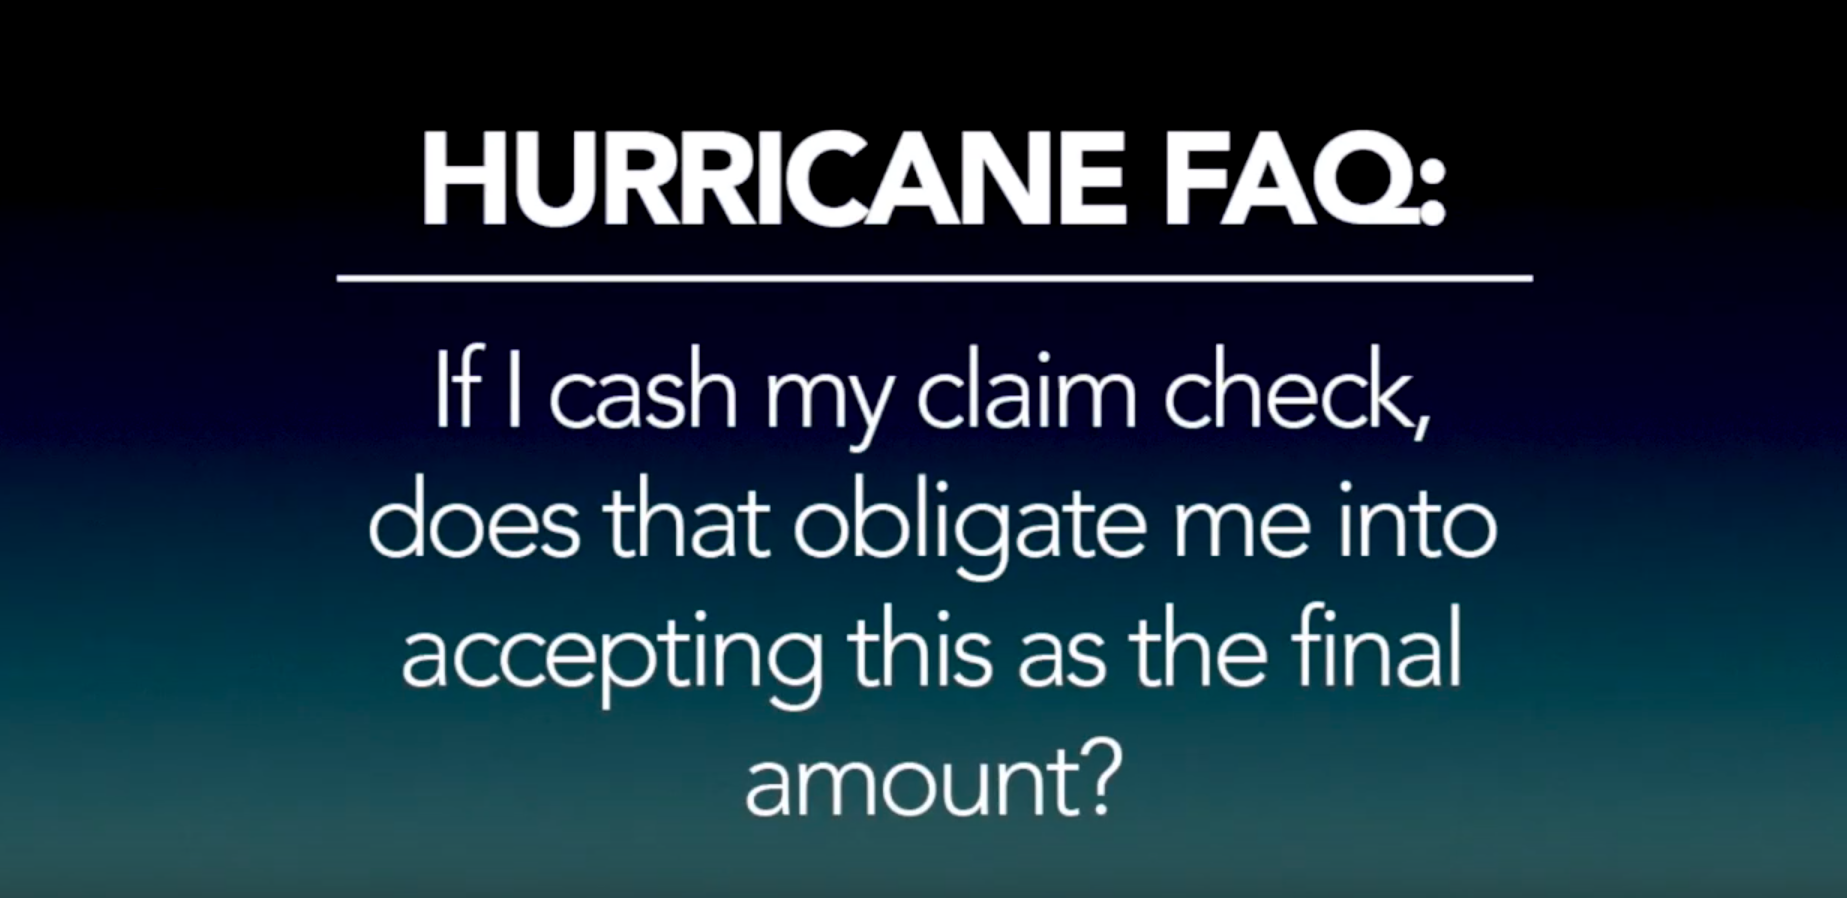 Hurricane FAQ – If I cash my claim check, am I accepting that as the final amount?